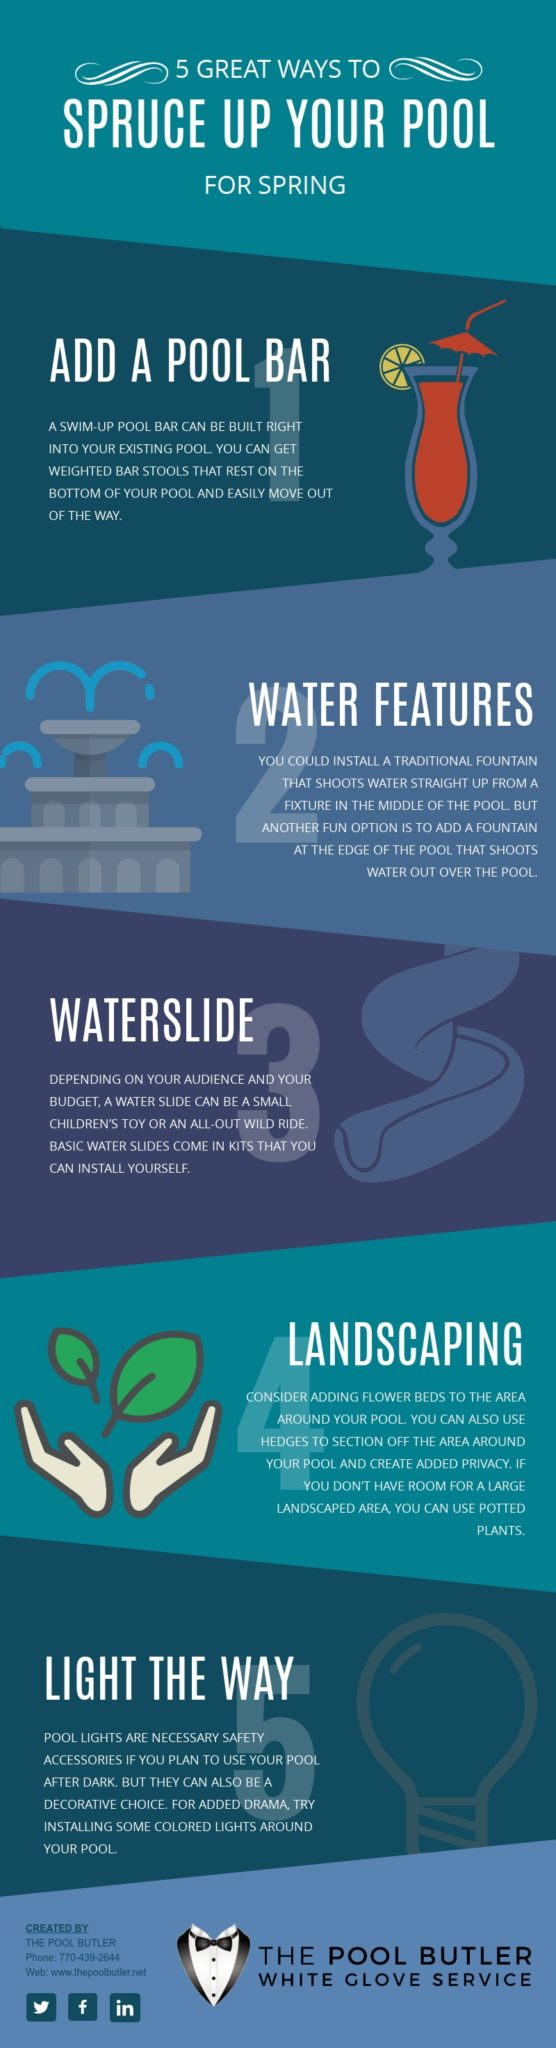 5 Great Ways to Spruce Up Your Pool for Spring [infographic]